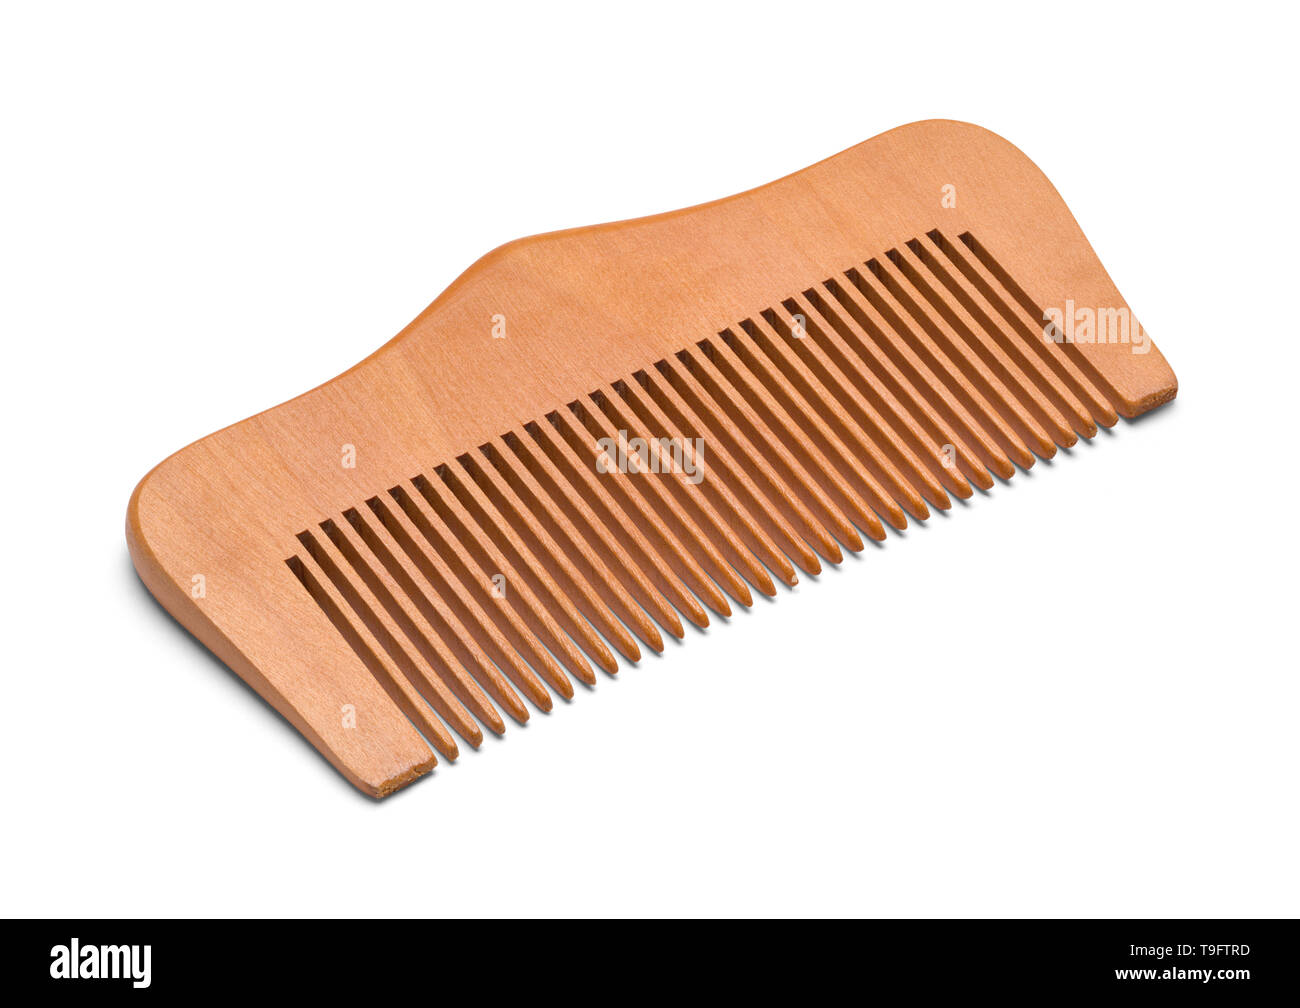 Wood Hand Comb Isolated on a White Bakground. Stock Photo